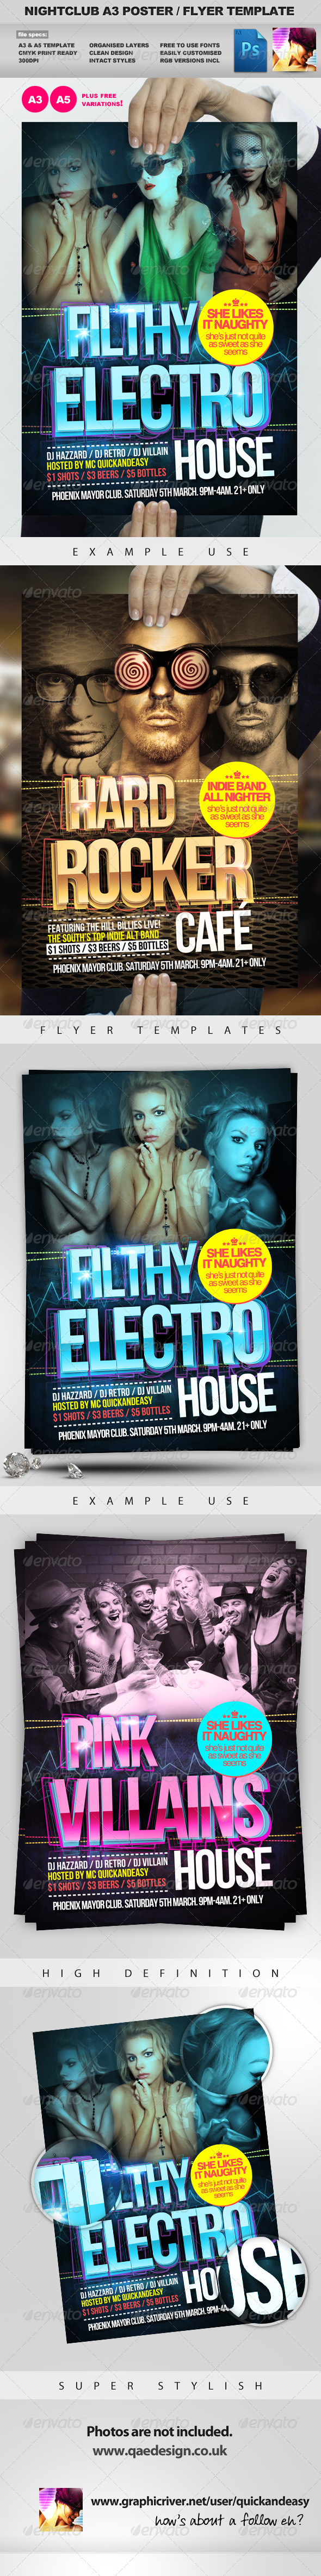 Filthy Electro House Club Party Flyer Templat - Clubs & Parties Events